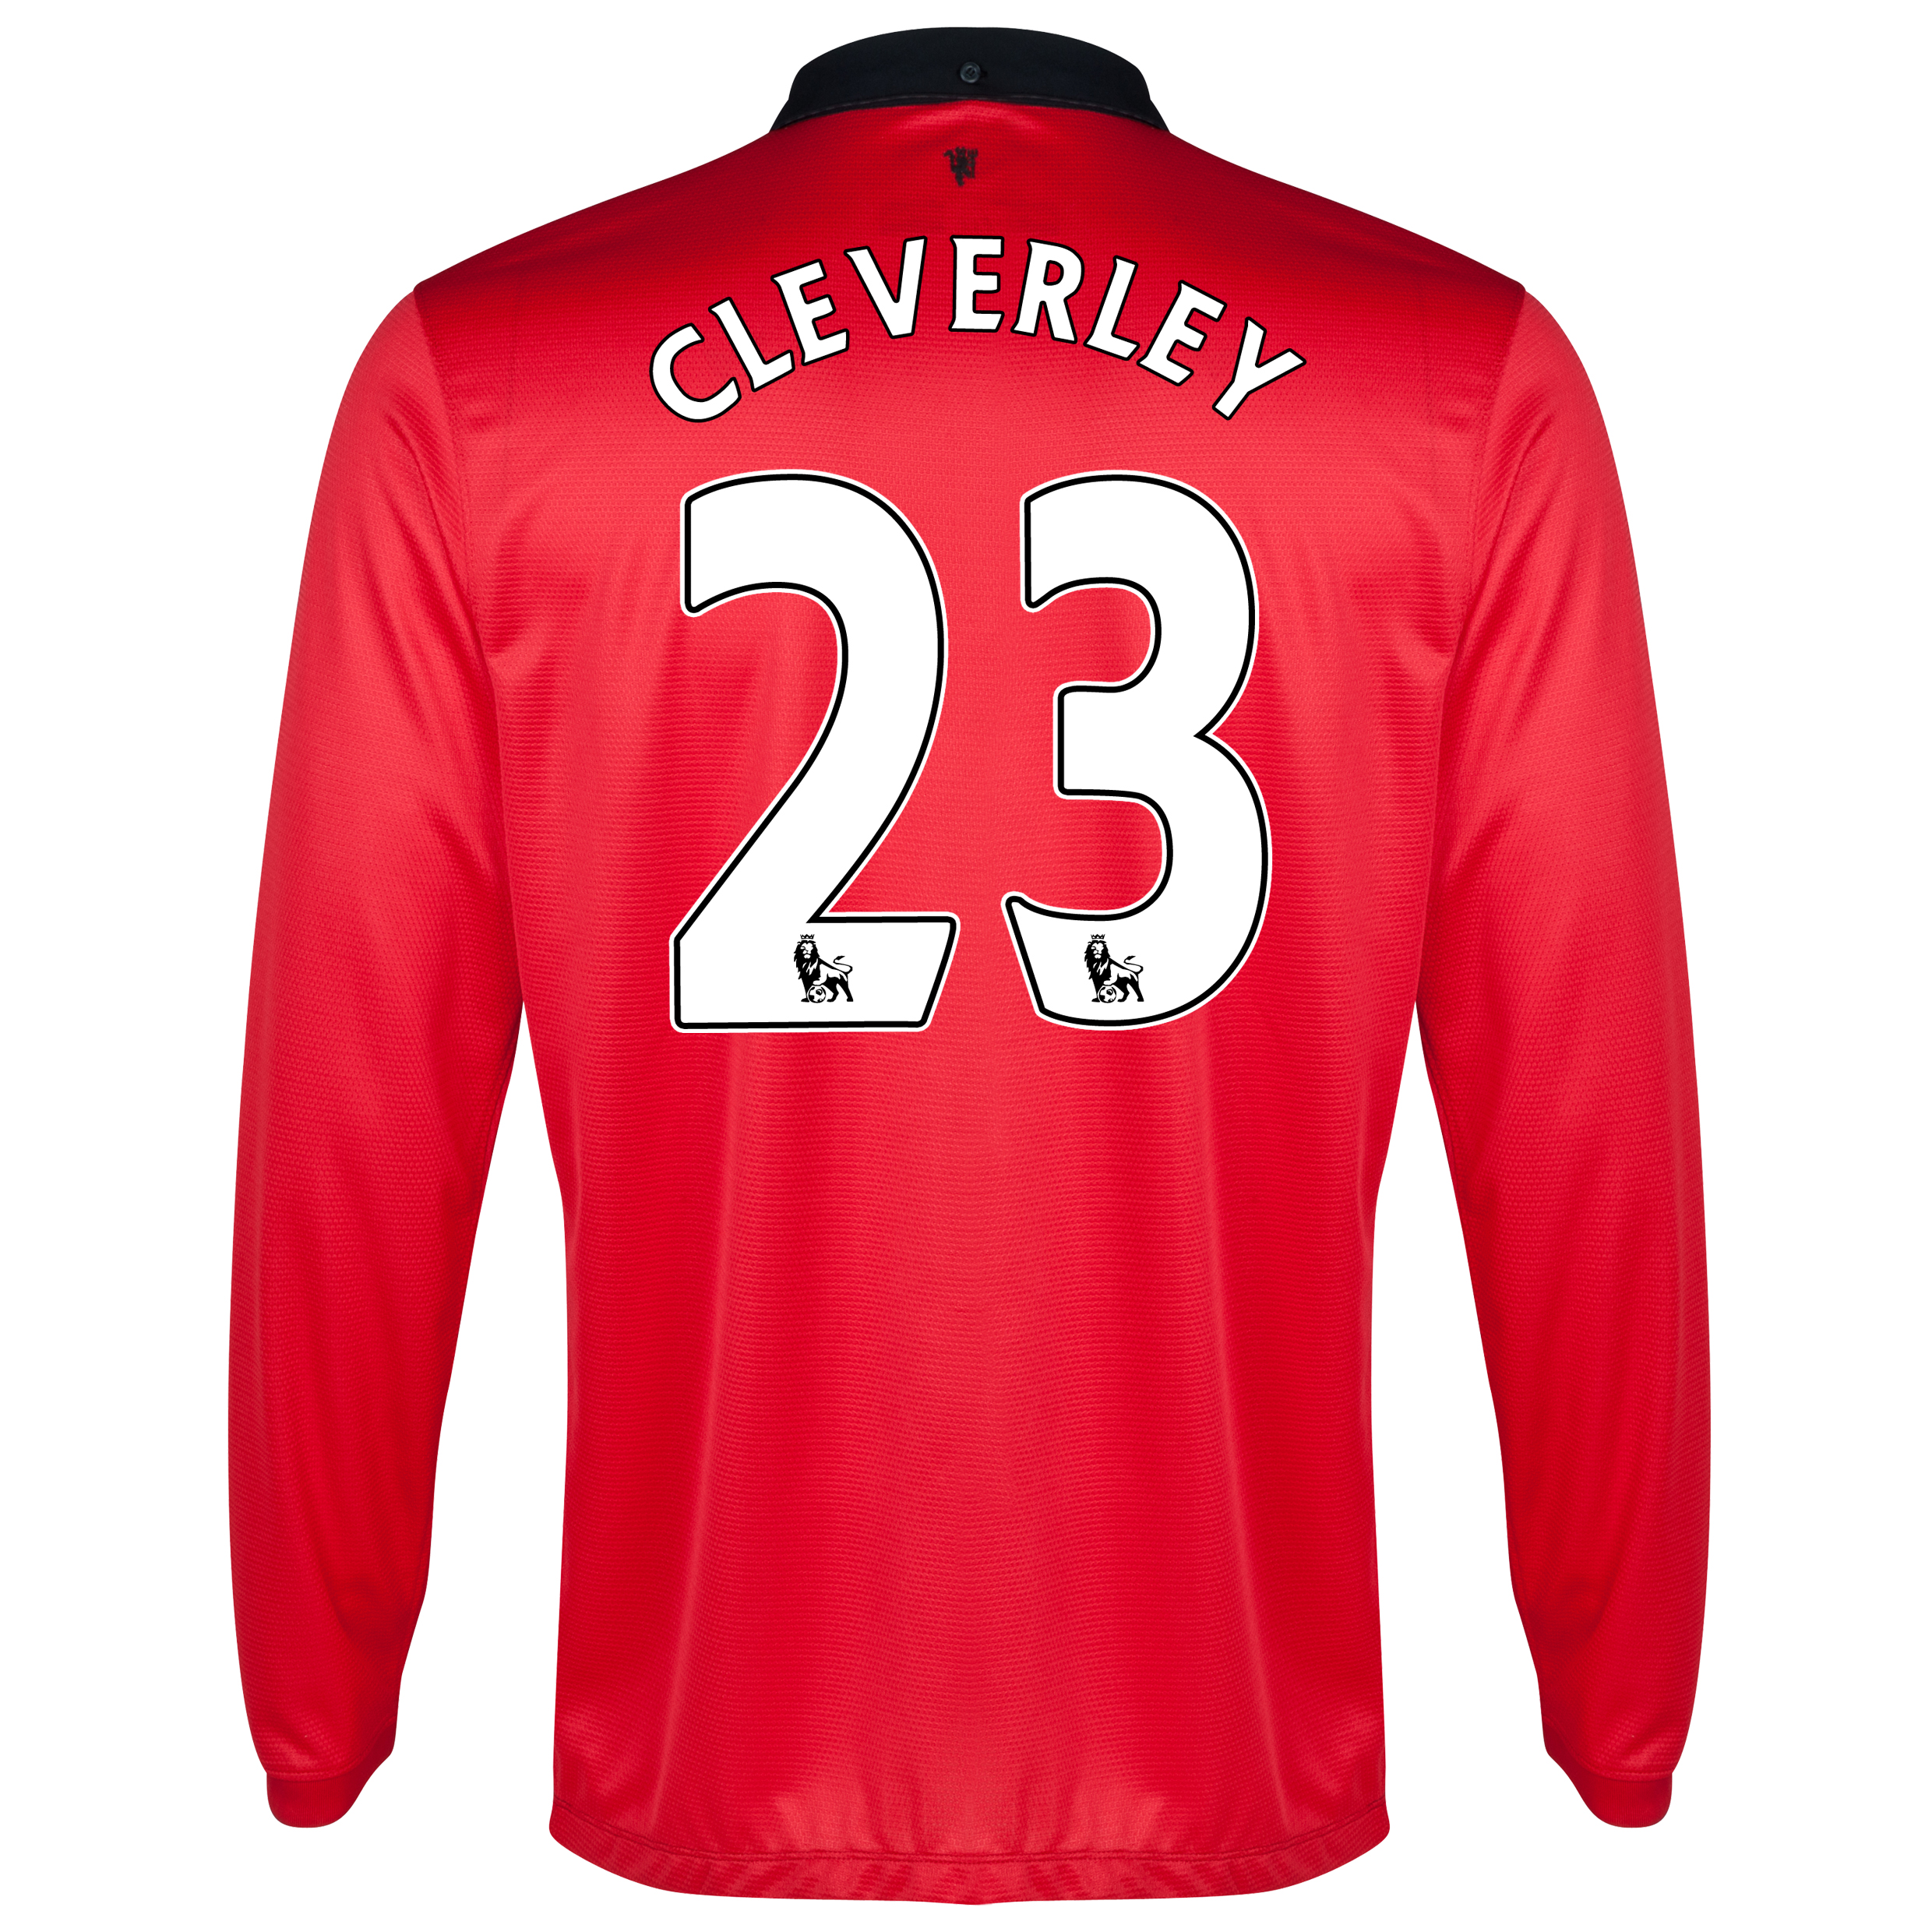 Manchester United Home Shirt 2013/14 - Long Sleeved - Kids with Cleverley 23 printing